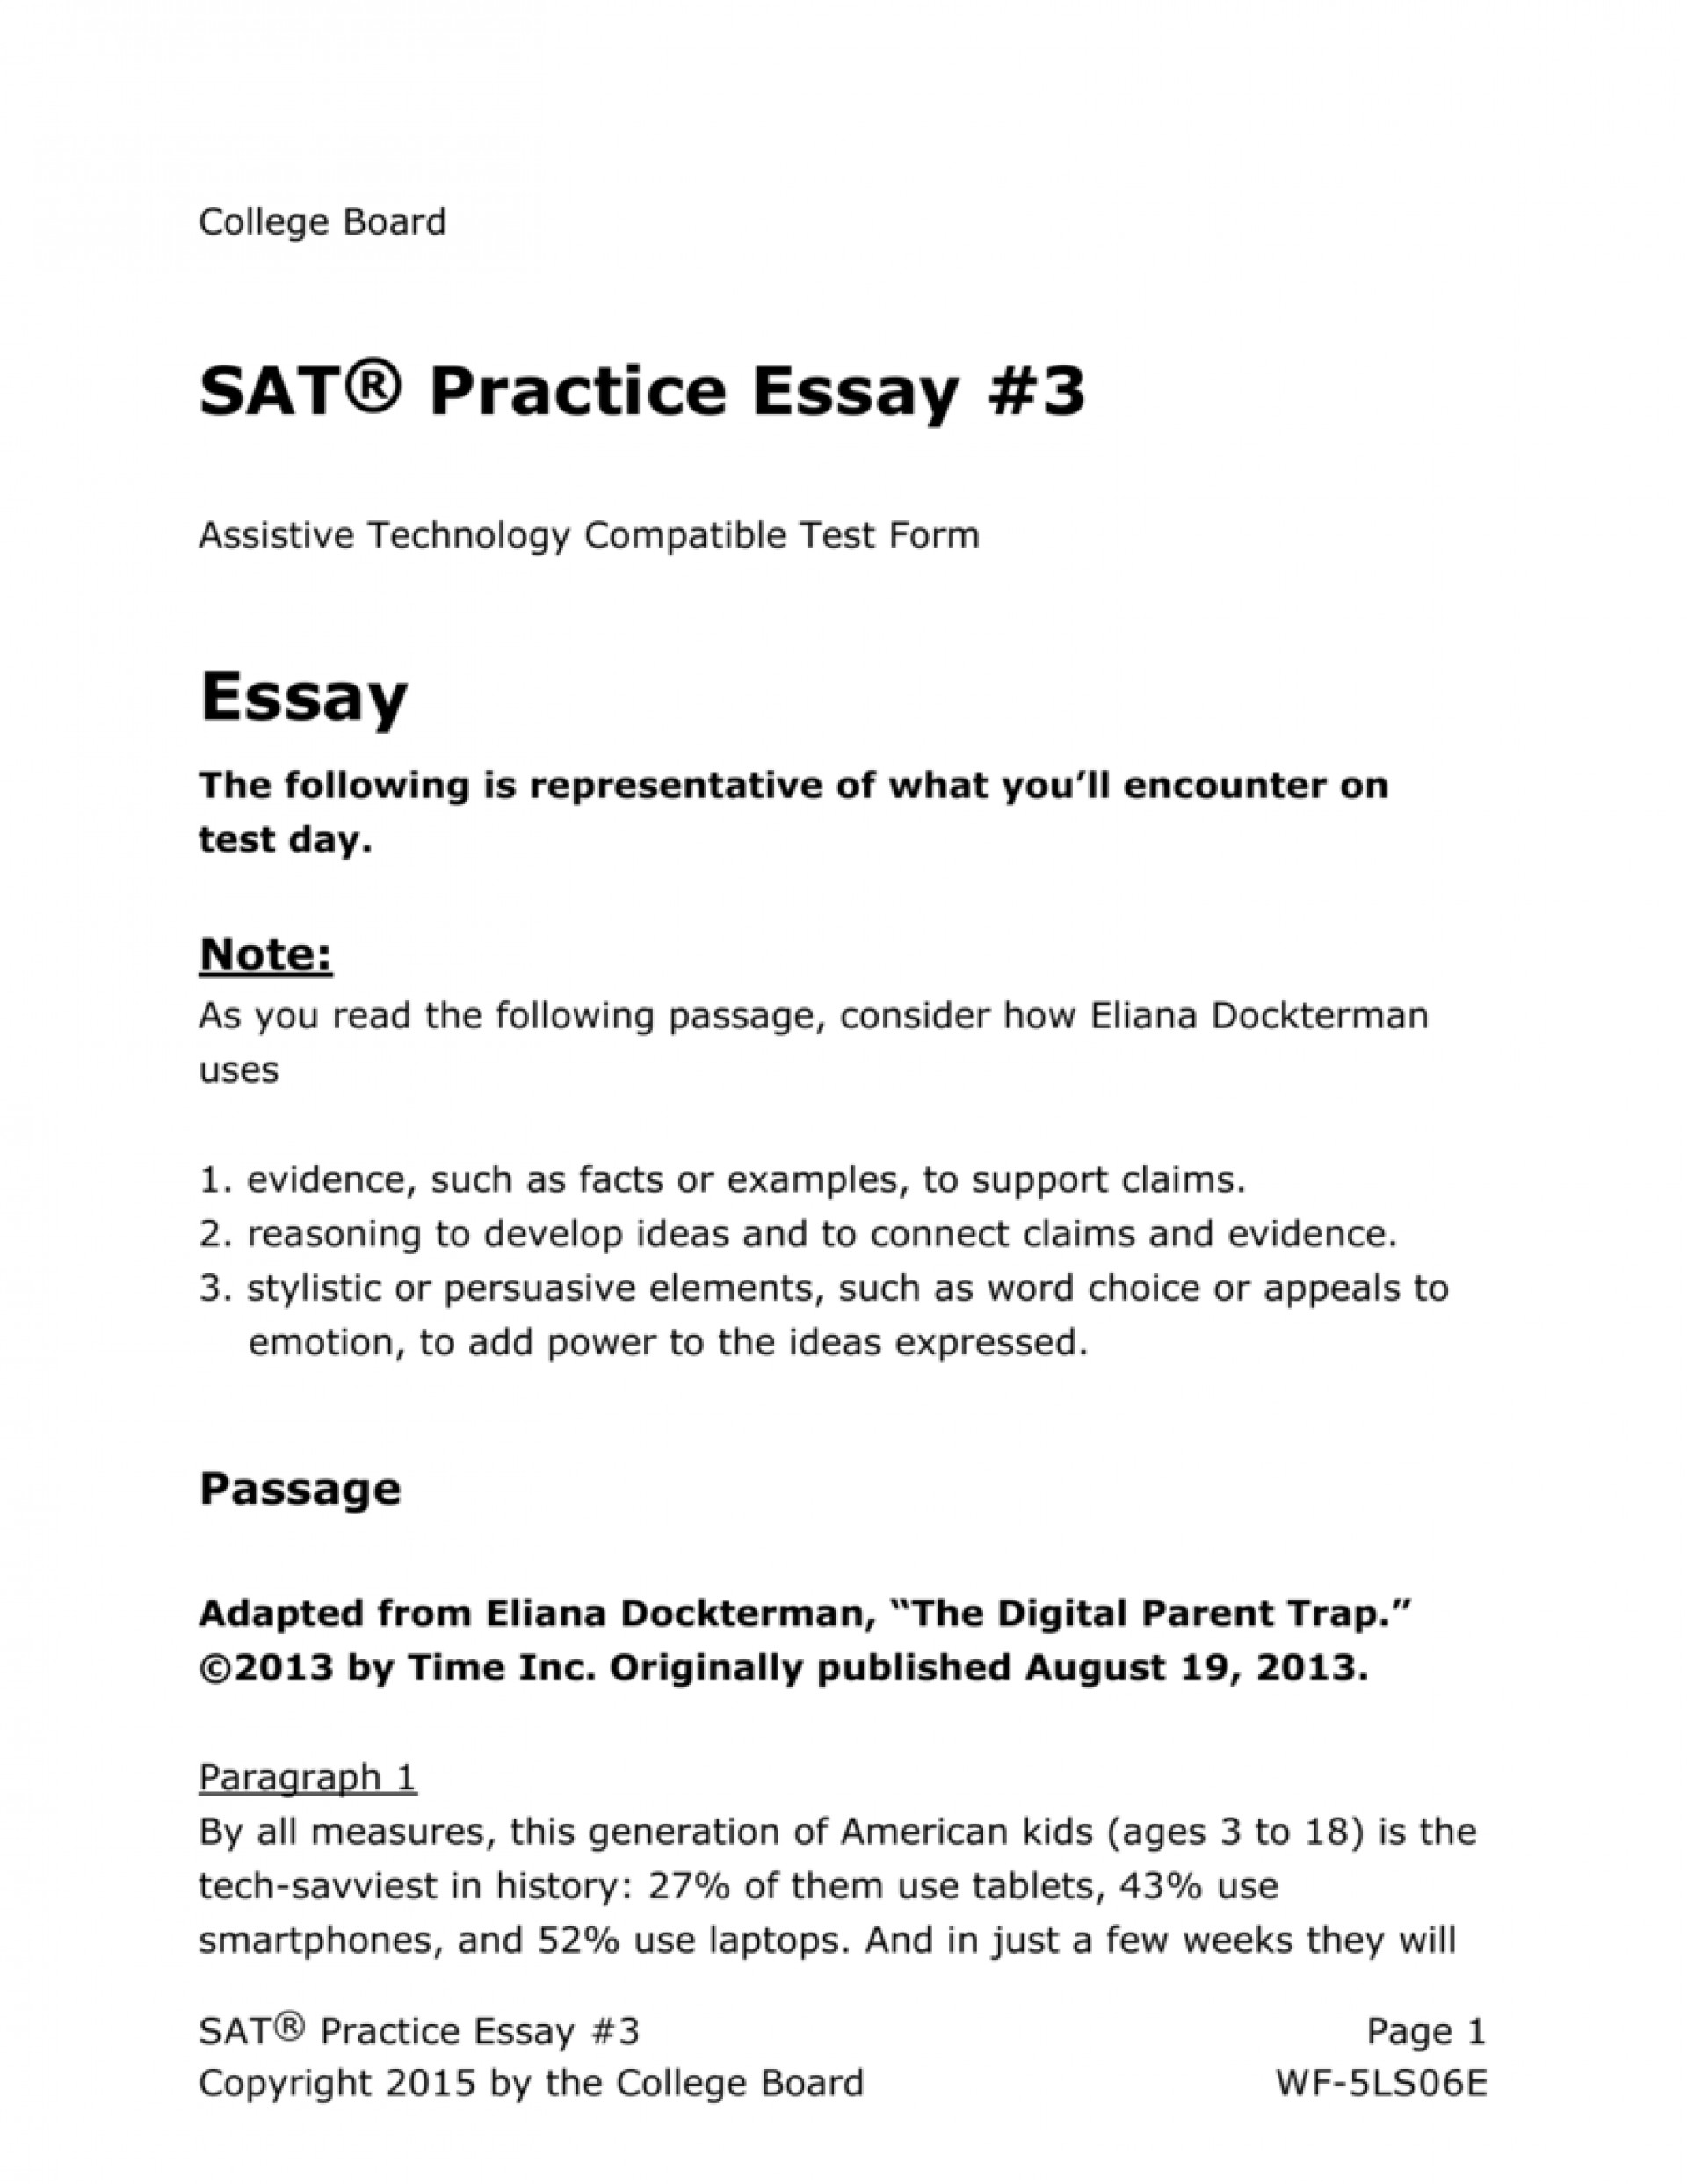 022 Essay Grading Rubric College Board Sat Term Paper Writing Service Sample 008001736 1ssays Ap Language Apush Application Prompts Us History World Unbelievable Act 1920